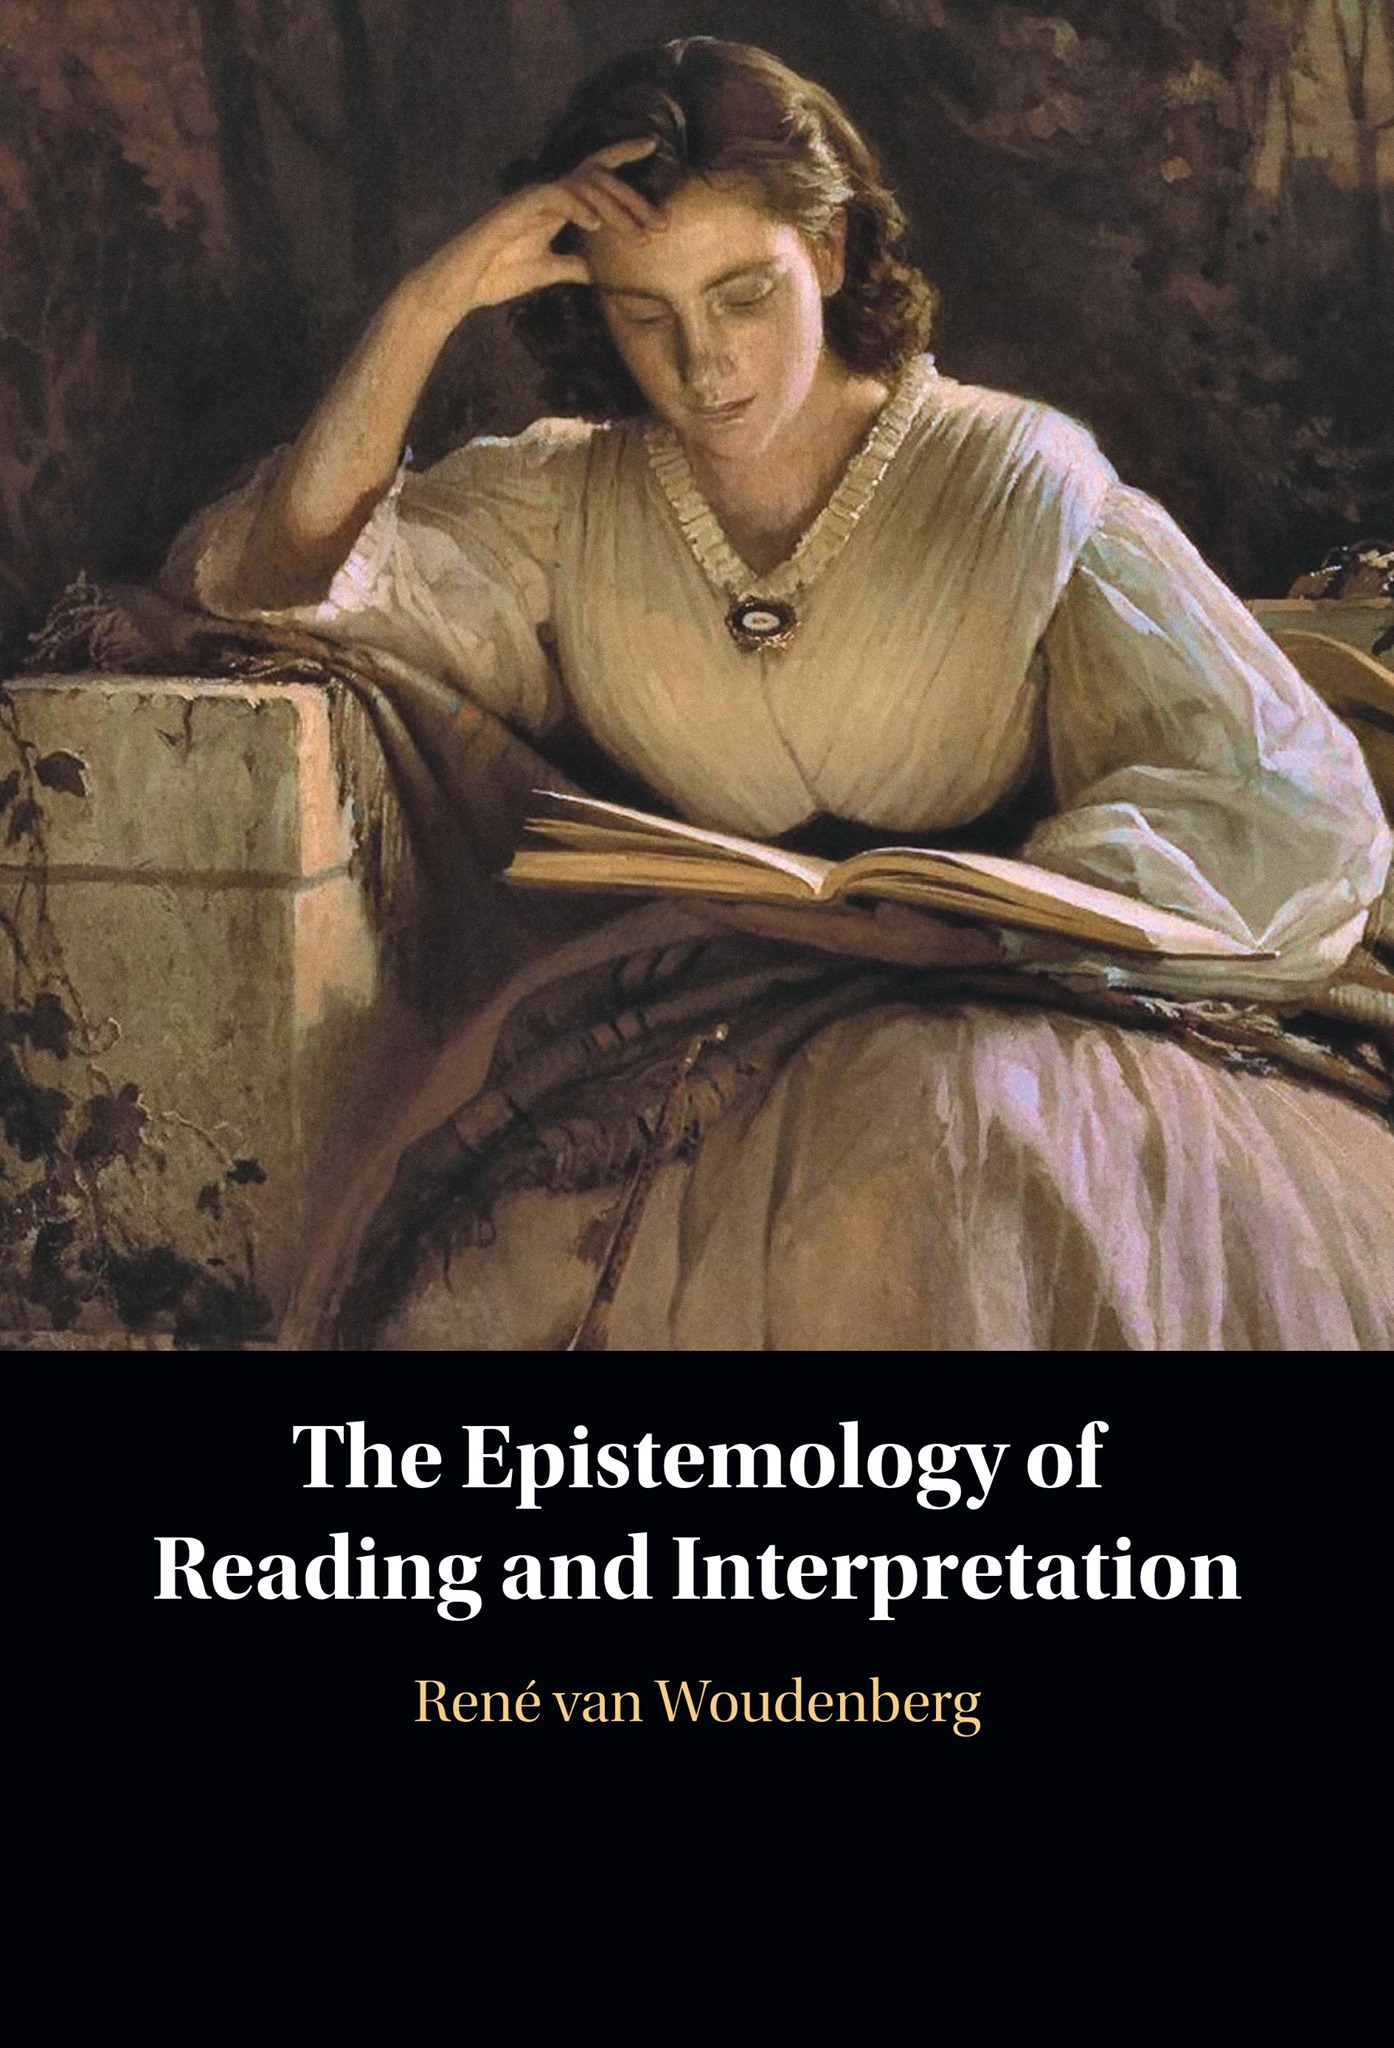 The Epistemology of Reading and Interpretation, by René van Woudenberg. To be published in October 2021